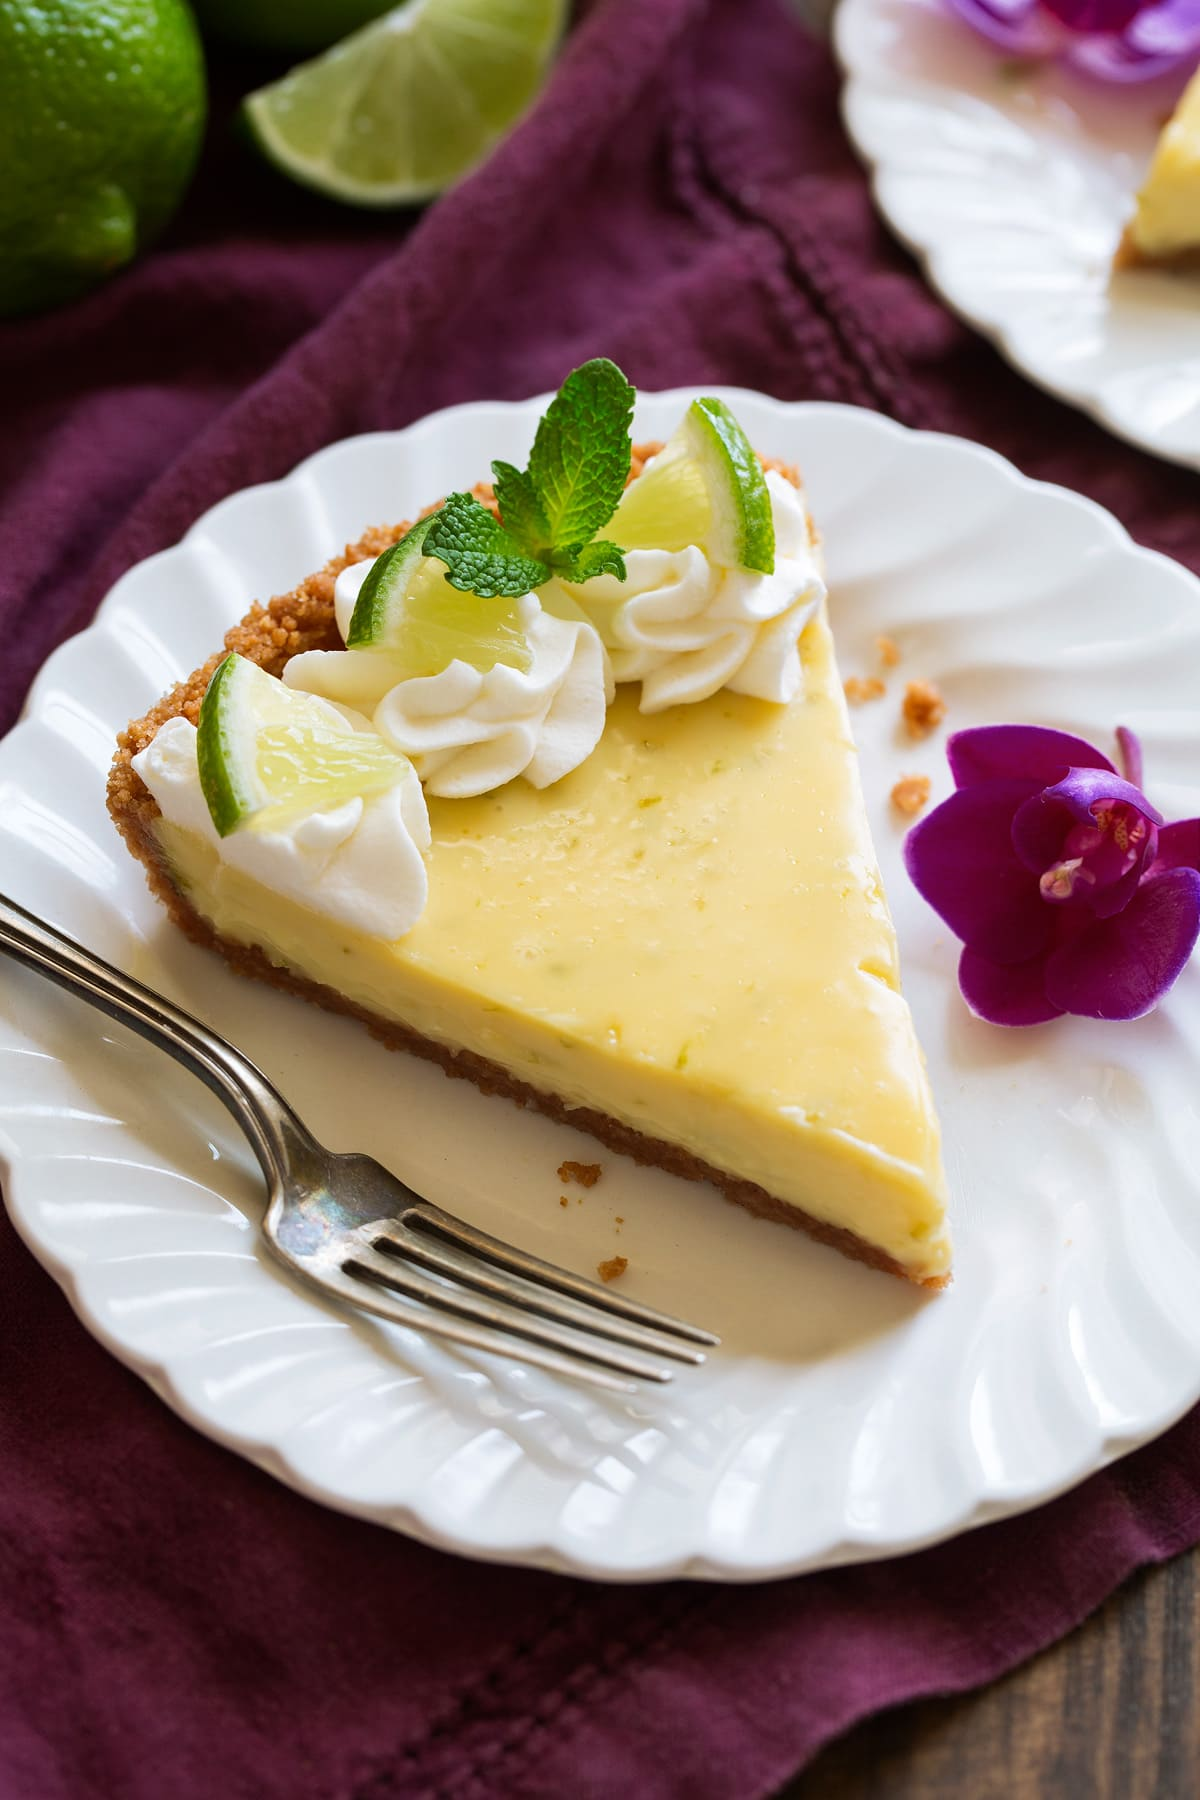 Slice of Best Key Lime Pie on white scalloped dessert plate set over a maroon napkin.